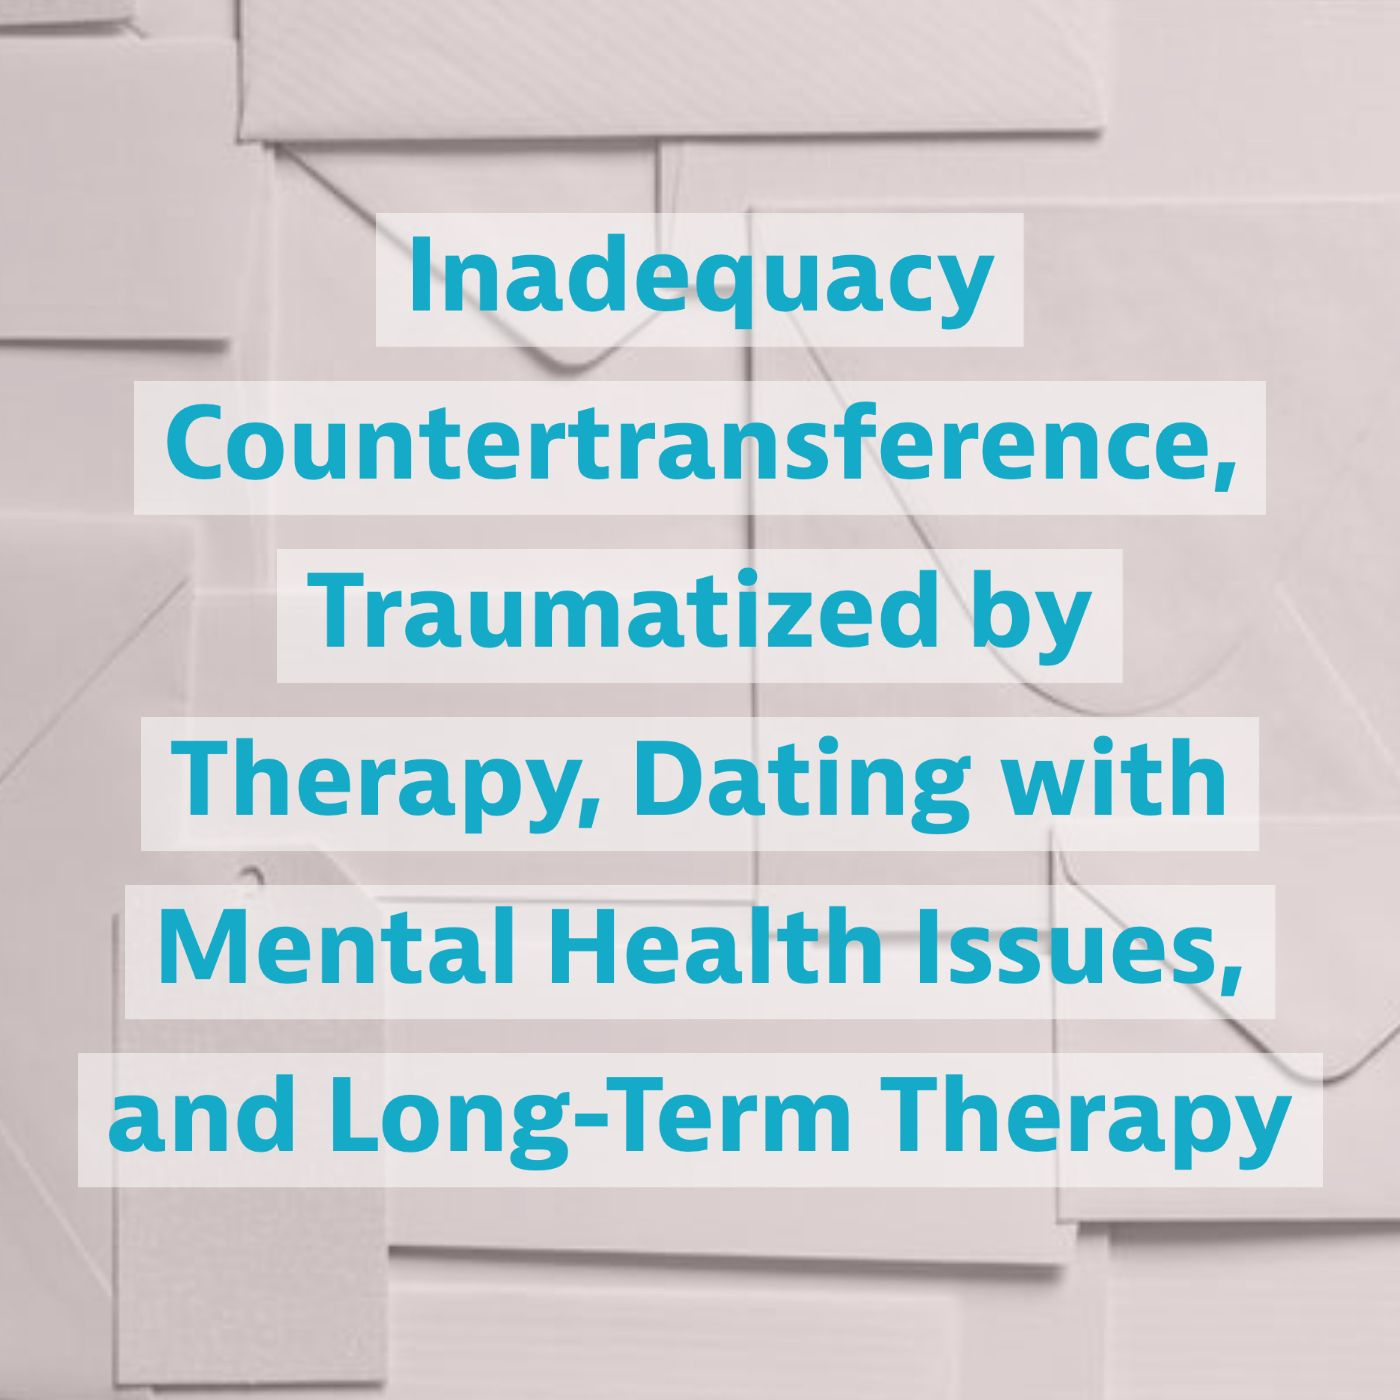 Inadequacy Countertransference, Traumatized by Therapy, Dating with Mental Health Issues, and Long-Term Therapy